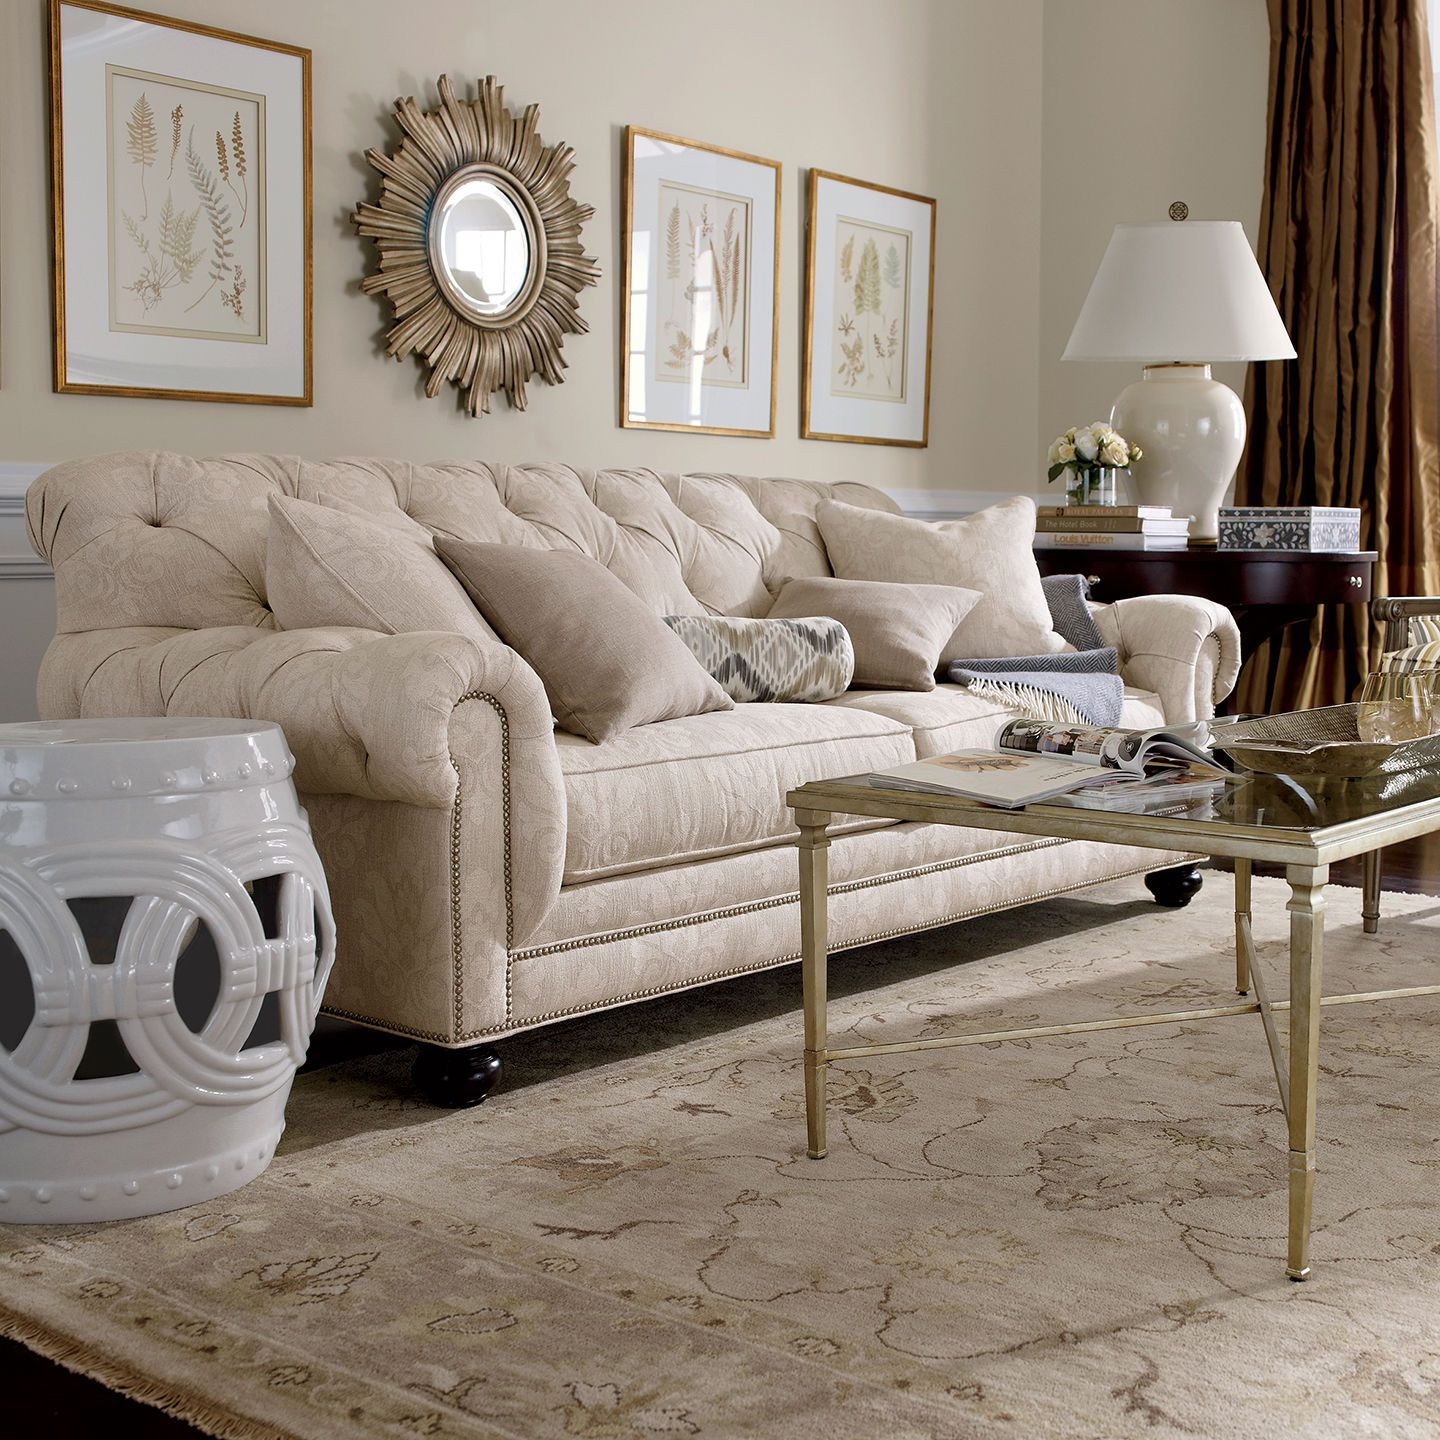 Ethan Allen Tufted Coffee Table: Neutral Rooms. Ethan Allen Living Rooms. Ethan Allen